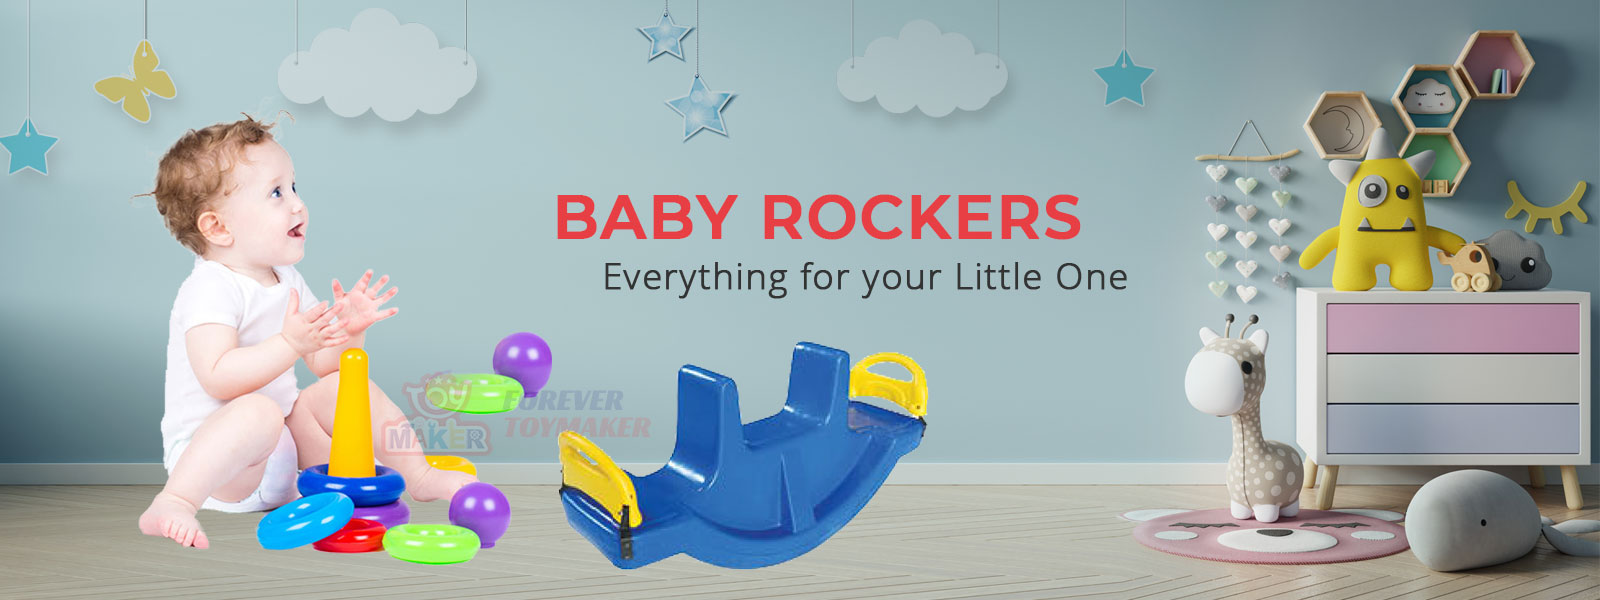 Baby Rockers Manufacturers in Nagpur